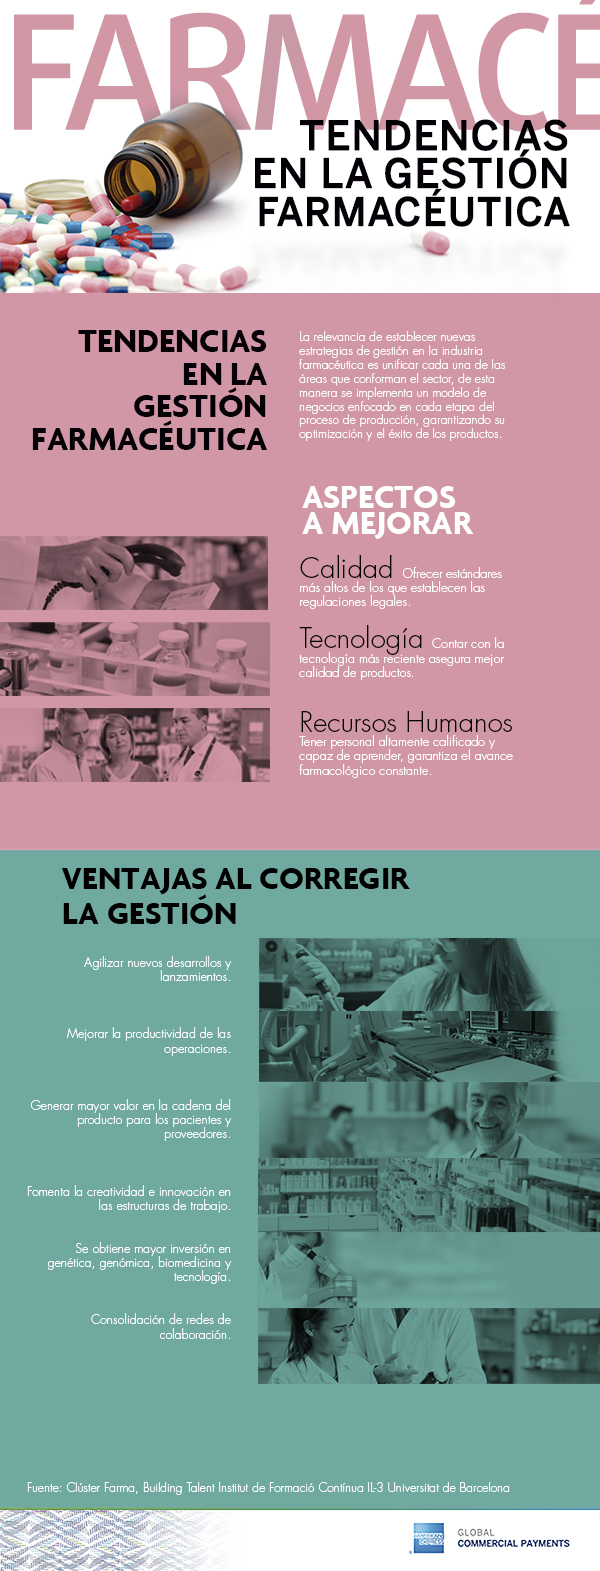 tendencias-en-la-gestion-farmaceutica